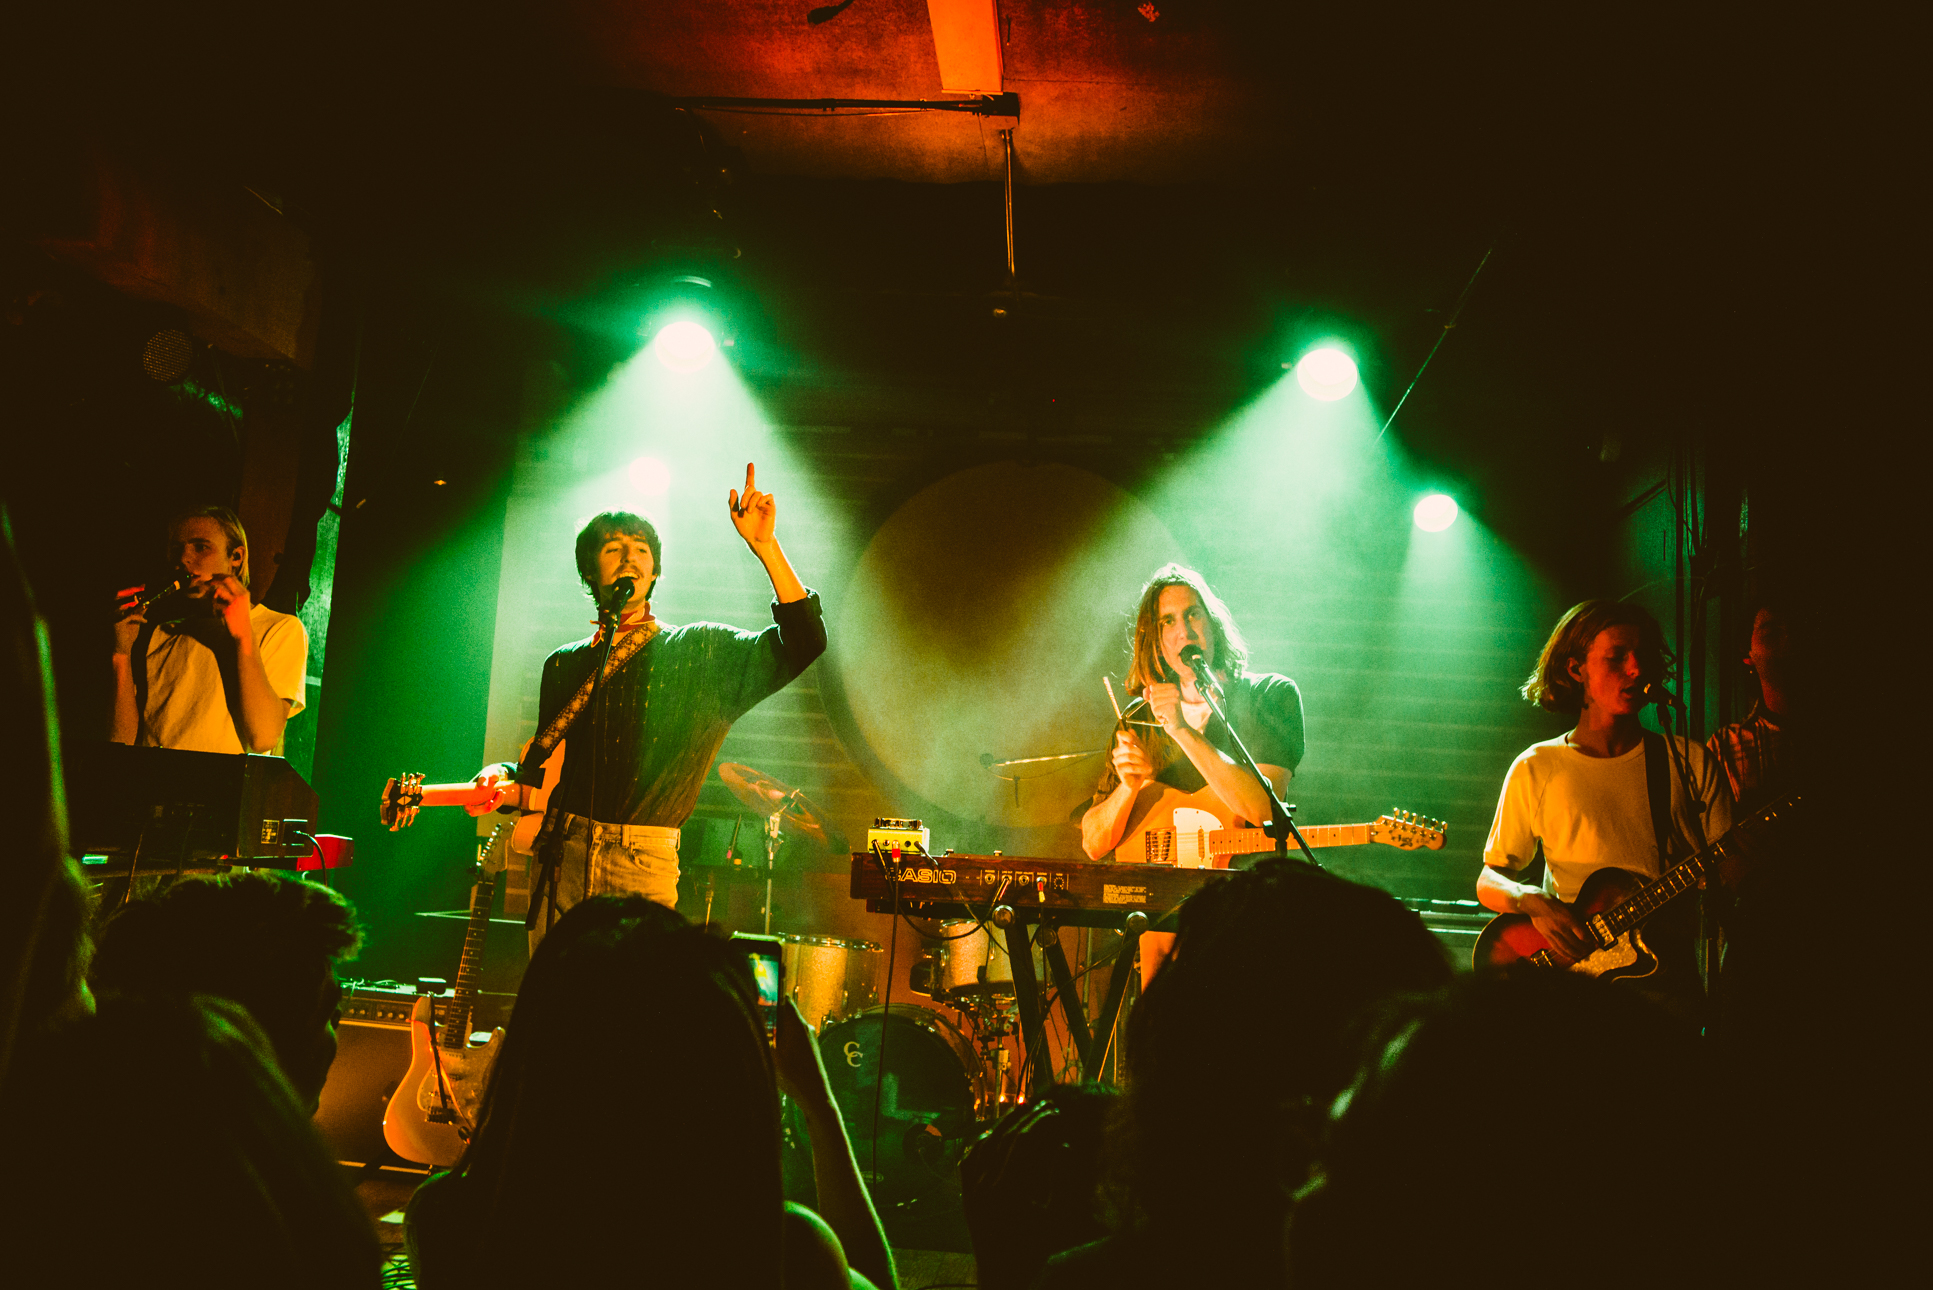 Parcels-FortuneSoundClub-Vancouver-March5th_ALICE HADDEN_DSC_1664.jpg